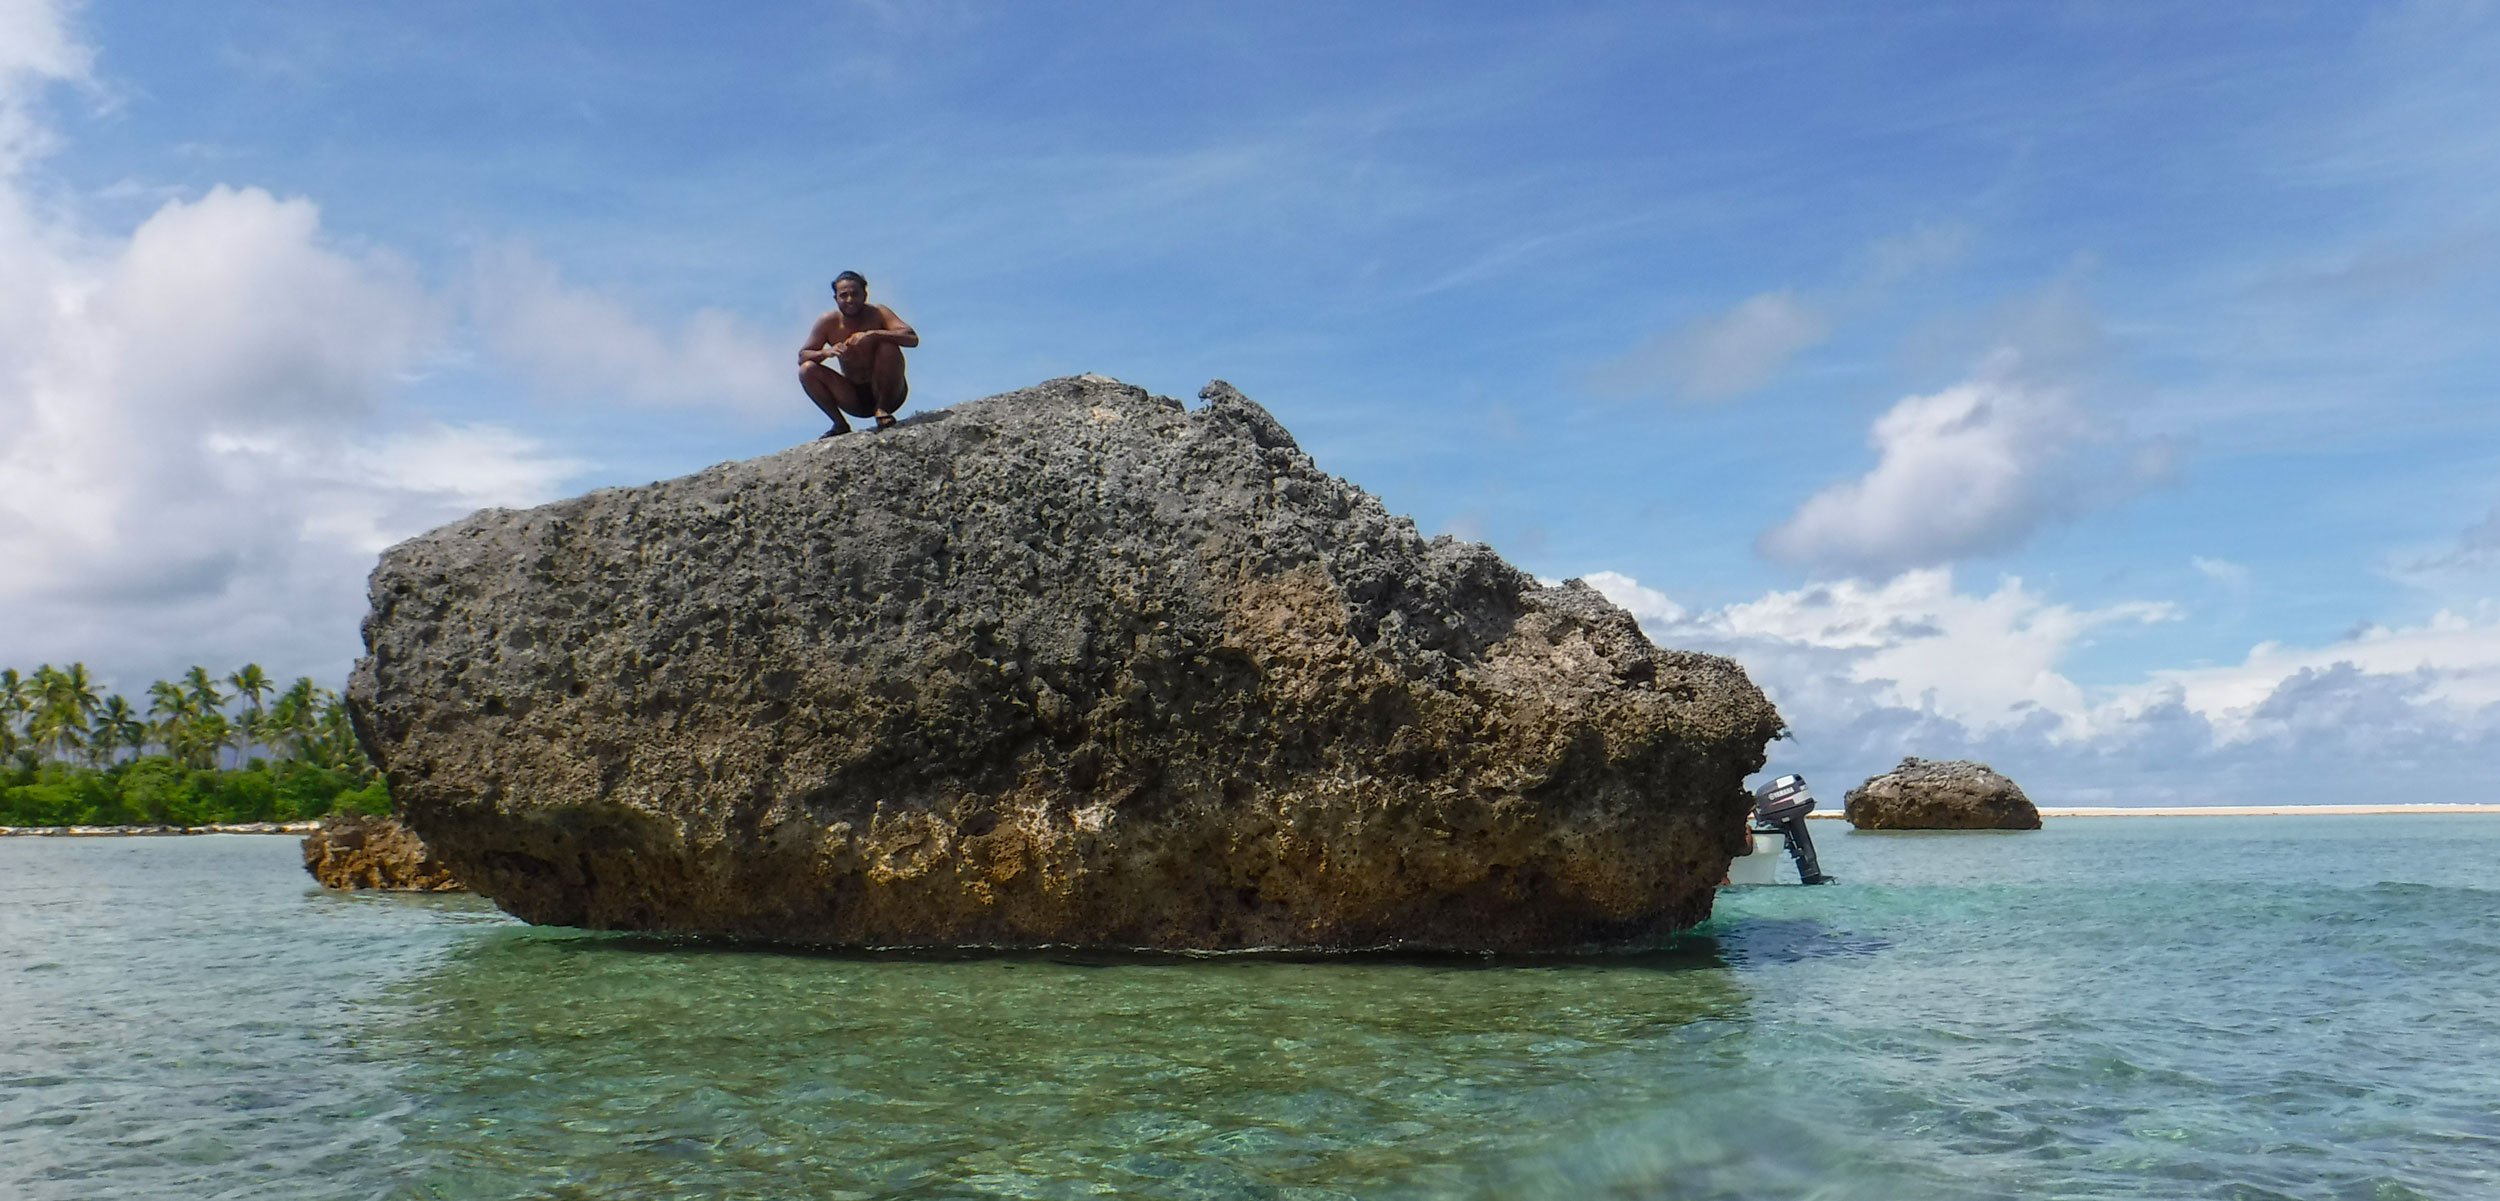 Person standing on large rock in teal water